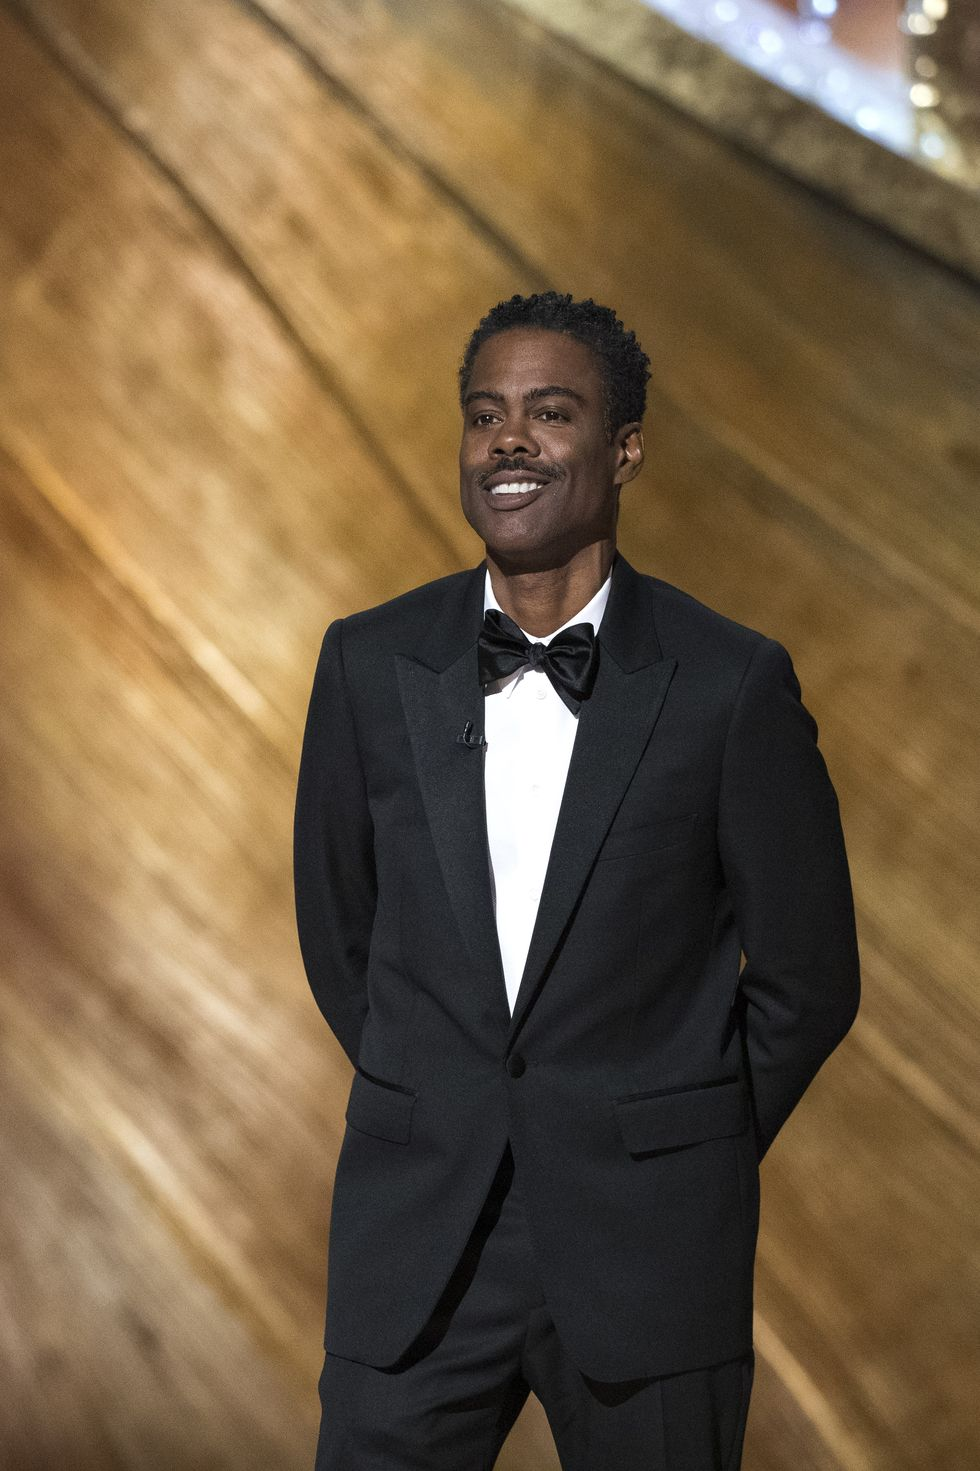 Chris Rock Just Revealed That He Has Covid thumbnail